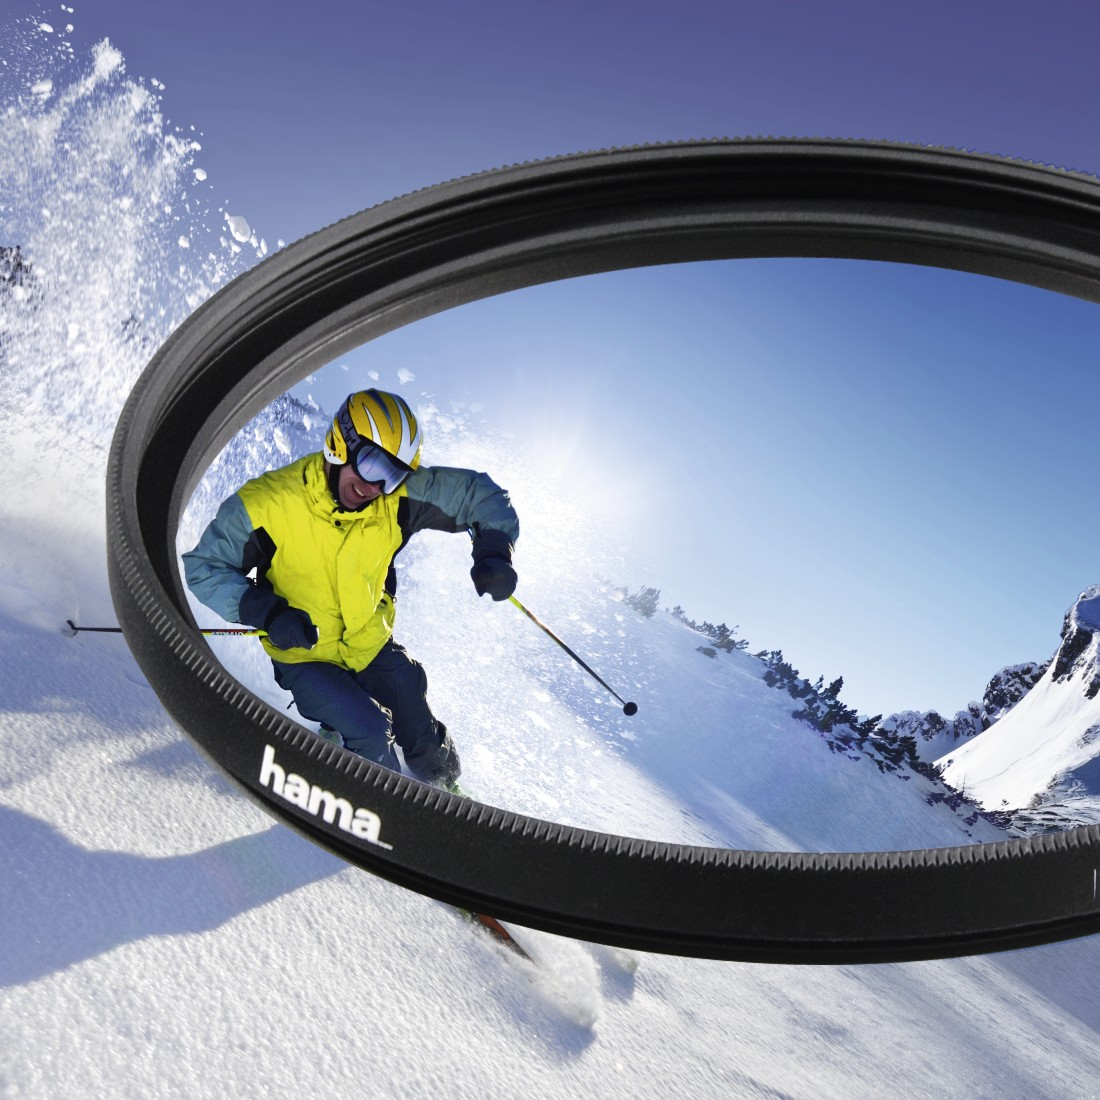 awx High-Res Appliance - Hama, UV Filter, coated, 58.0 mm